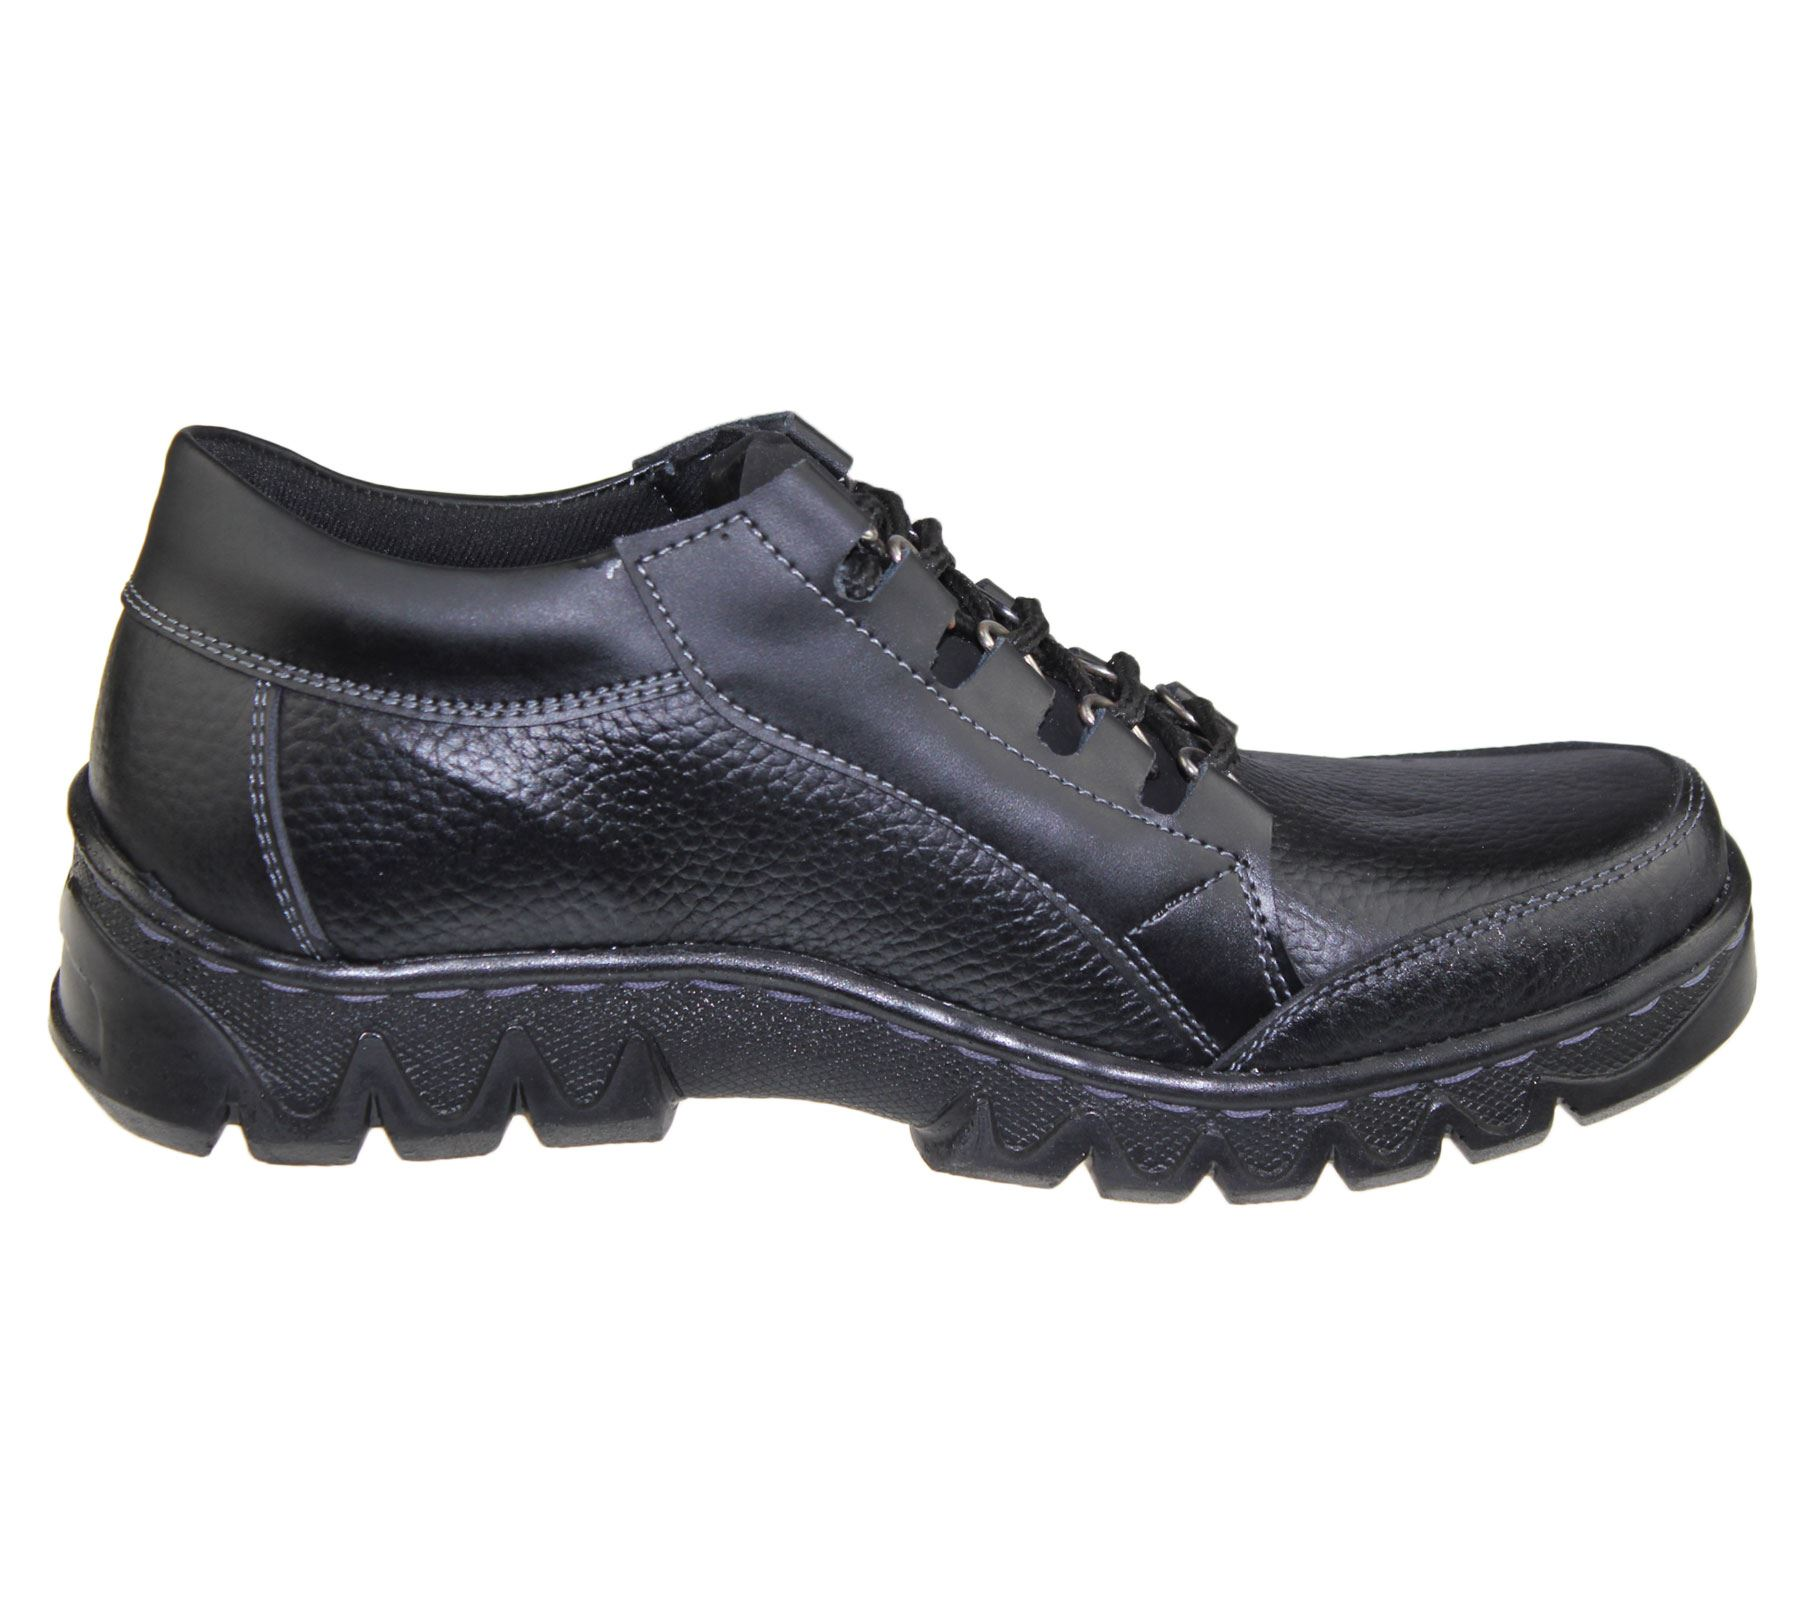 mens lace up shoes casual comfort deck comfort walking